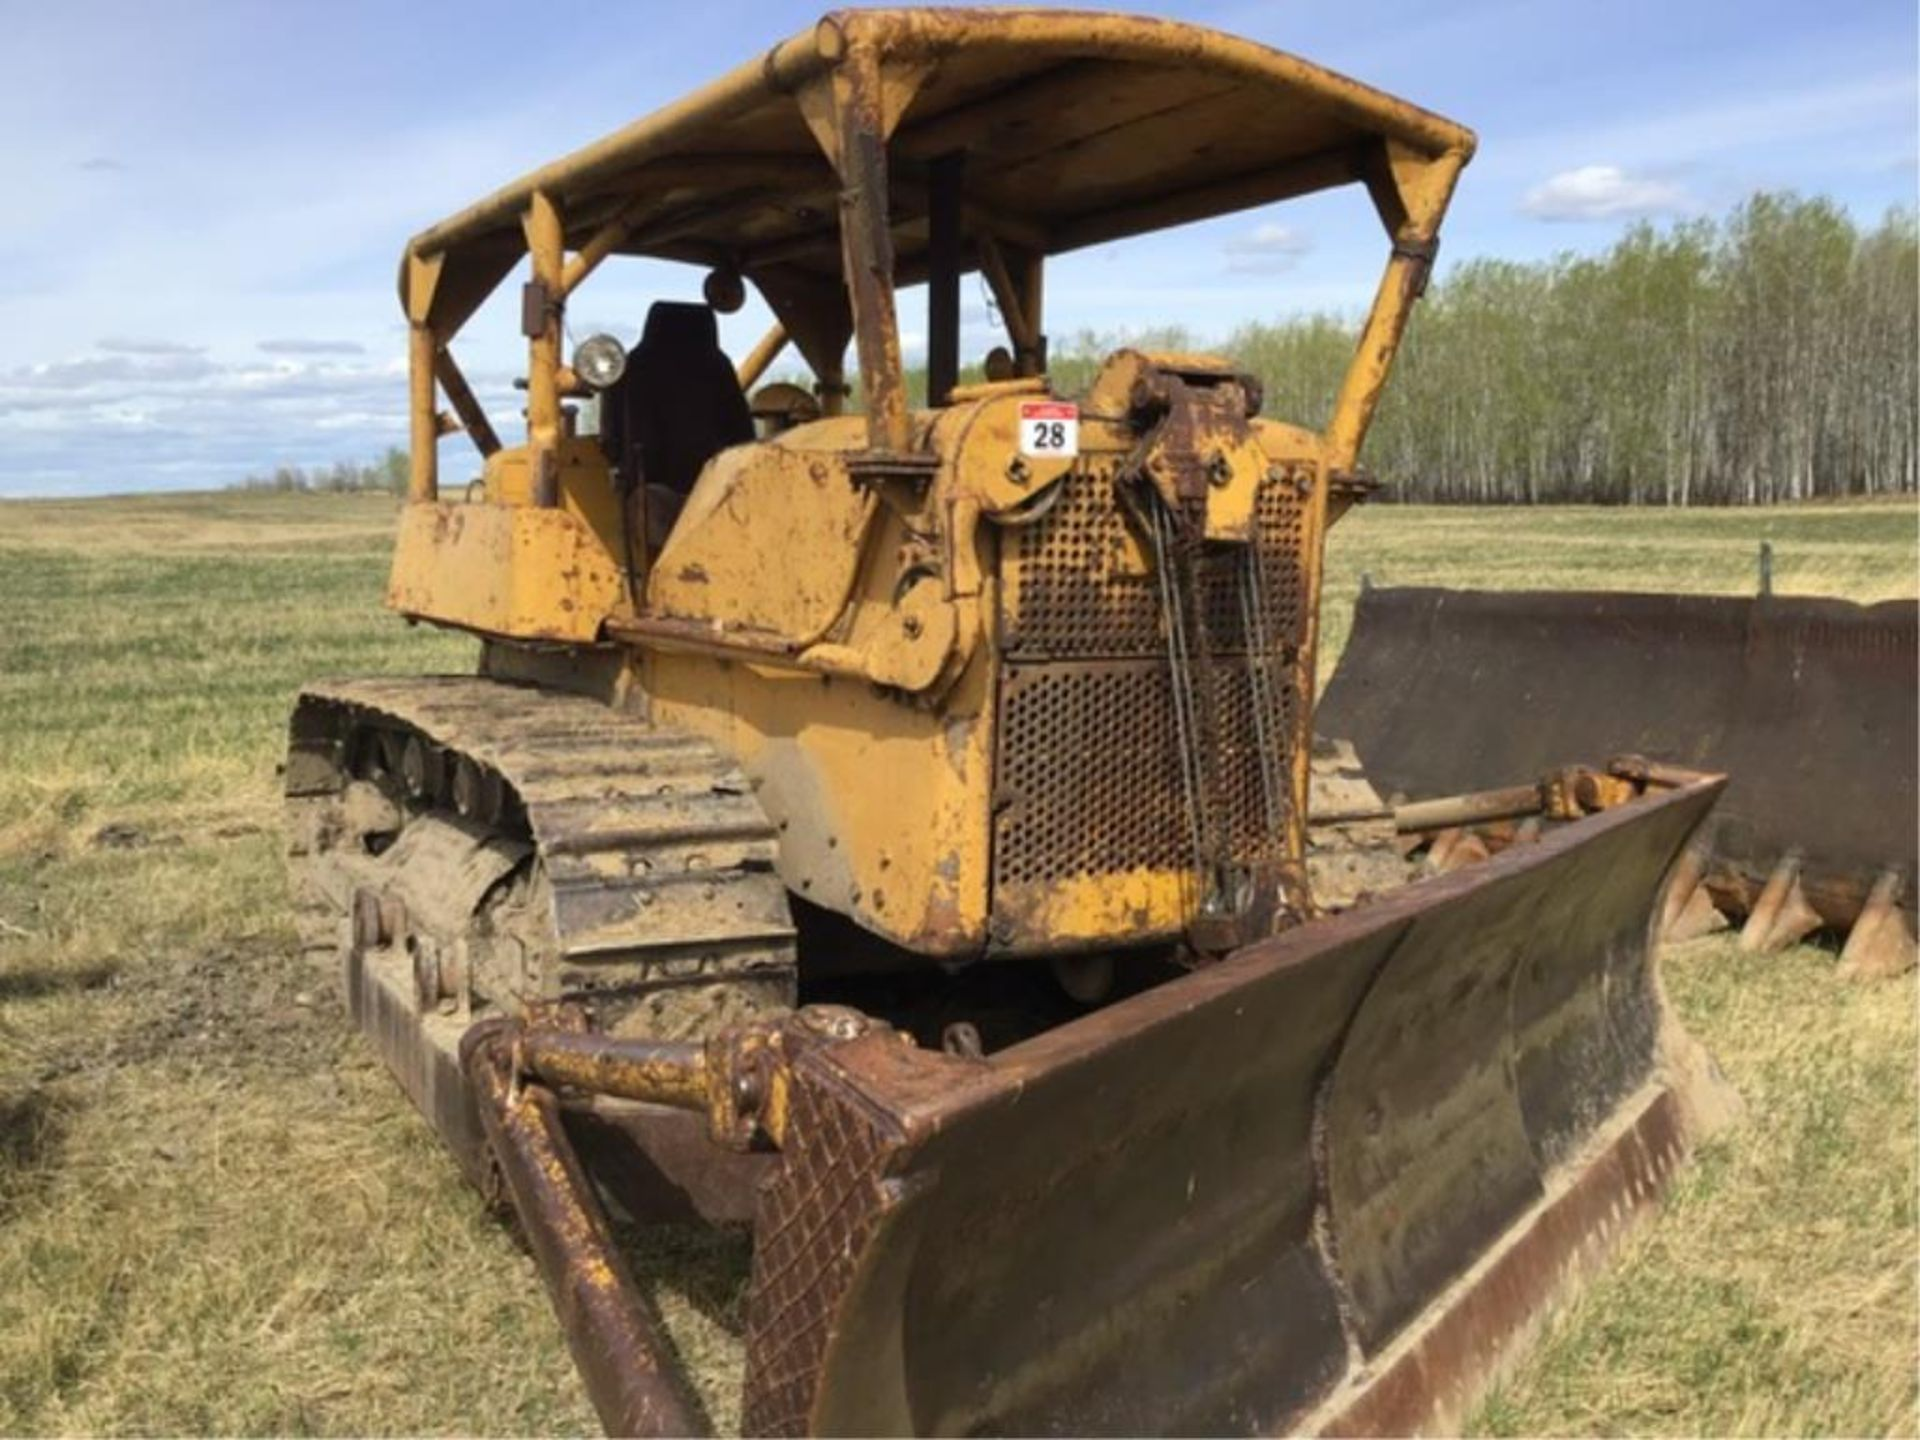 Lot 28 - D7 3T Caterpillar Crawler Tractor